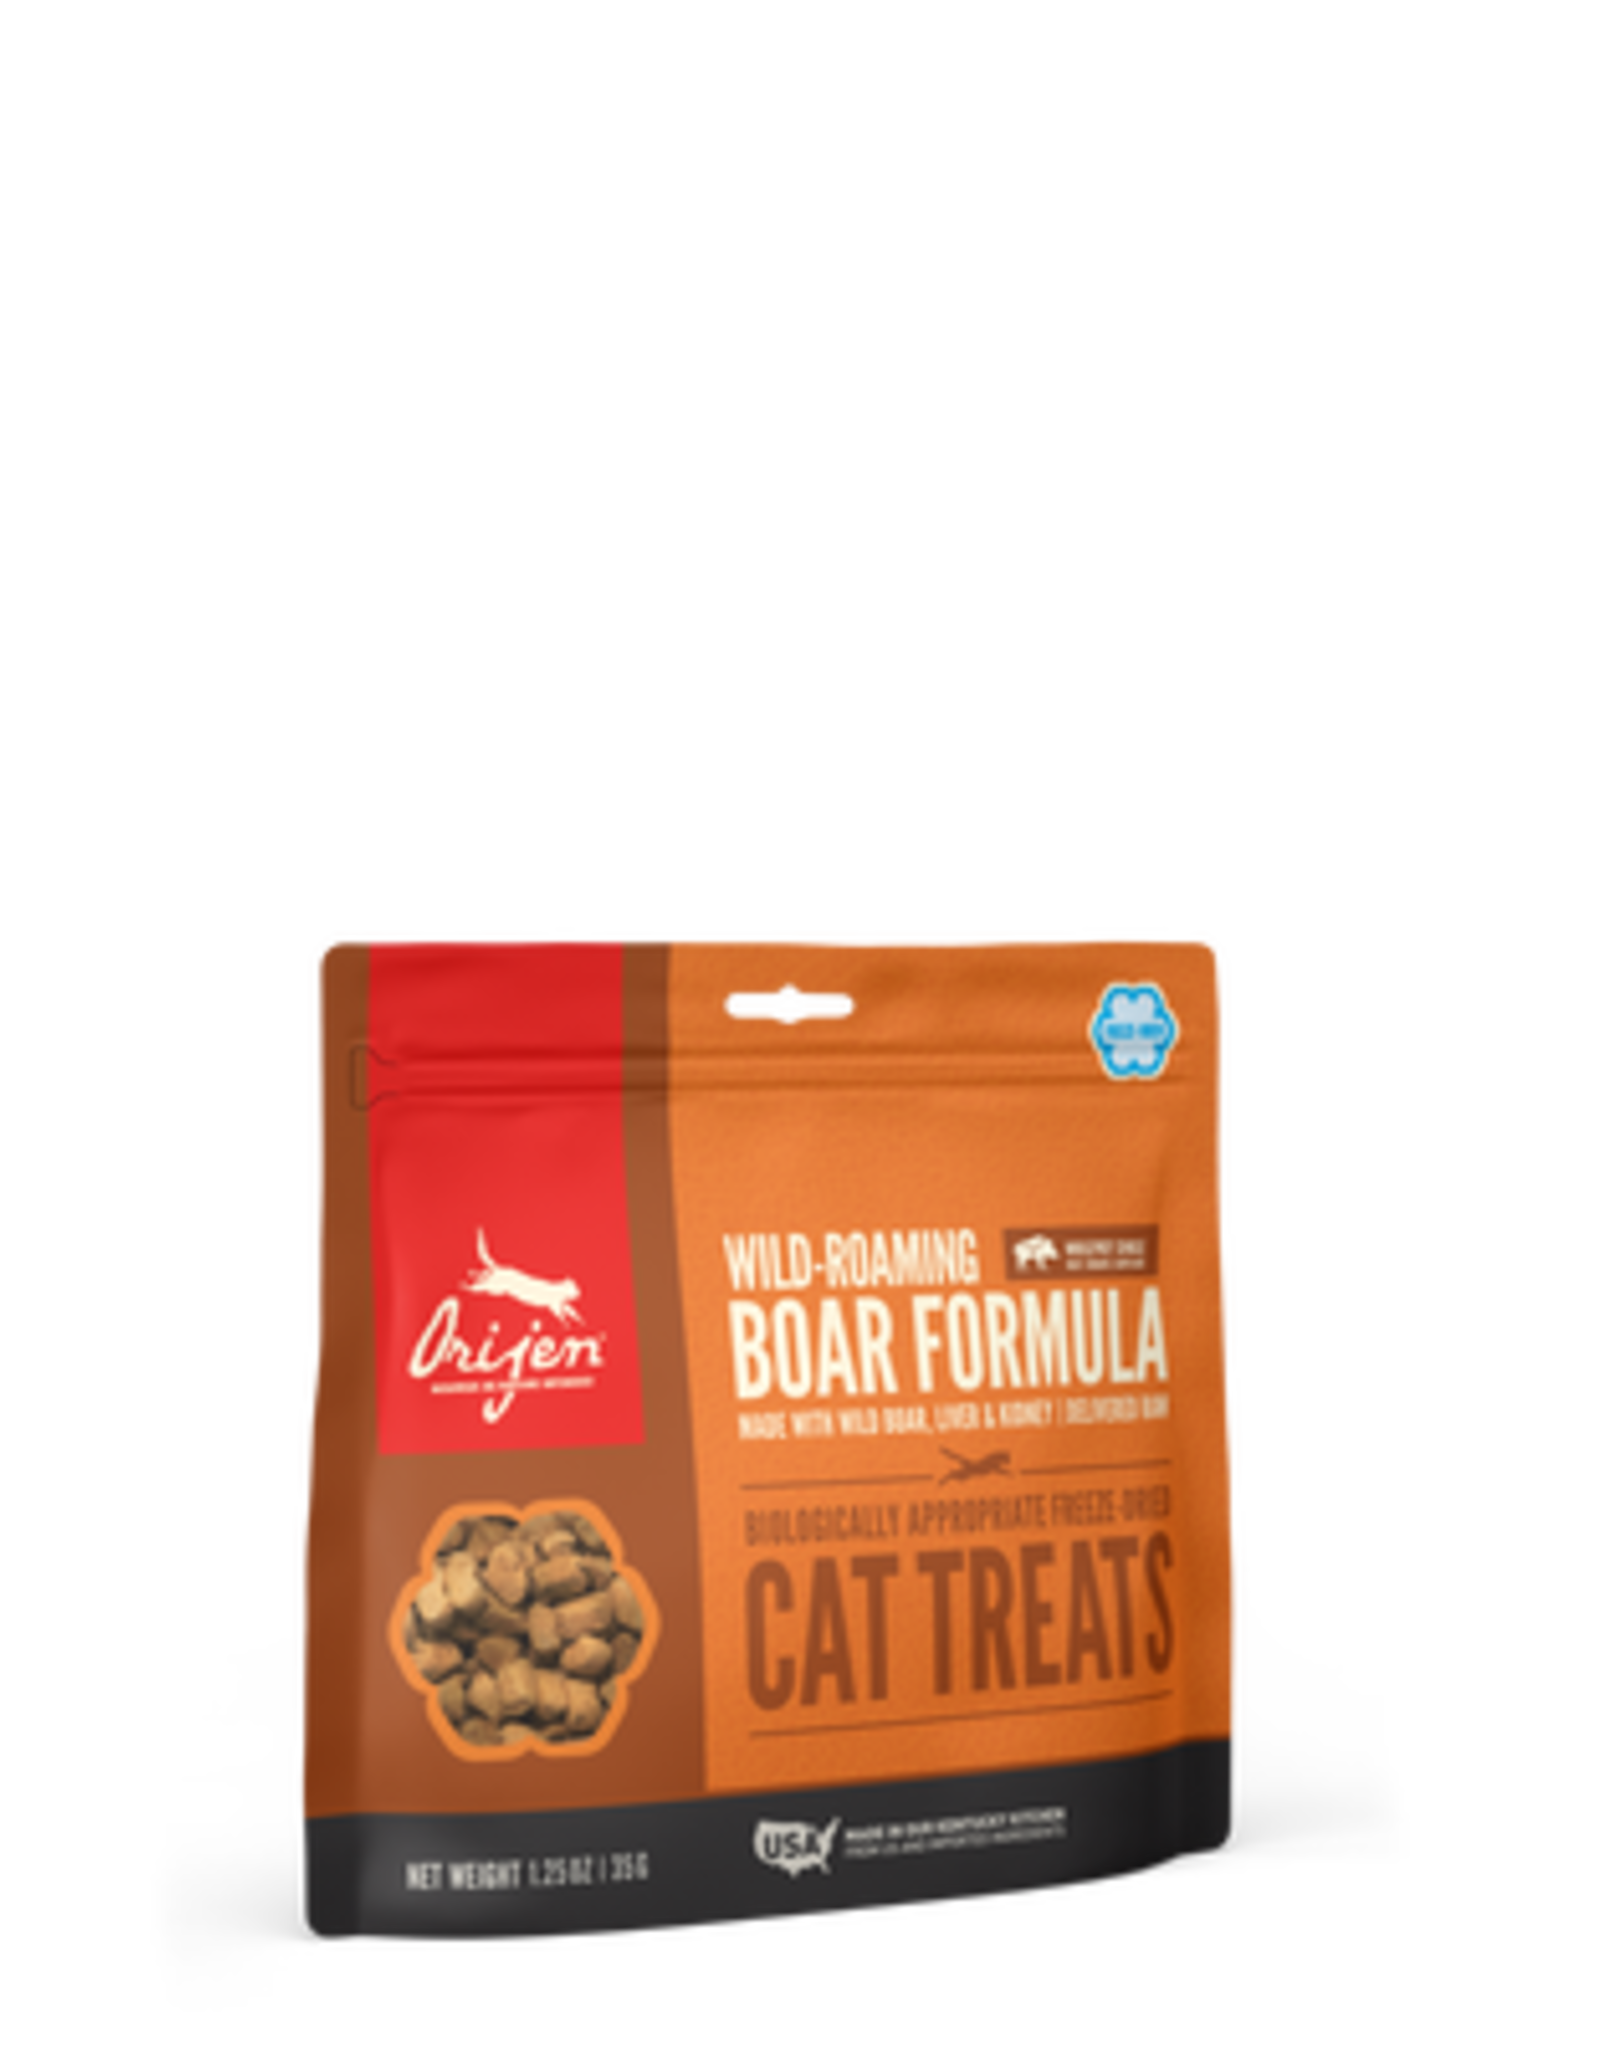 Orijen Orijen Freeze Dried Cat Treats Wild-Roaming Boar Recipe with Wild Boar, Liver, & Kidney 1.25oz